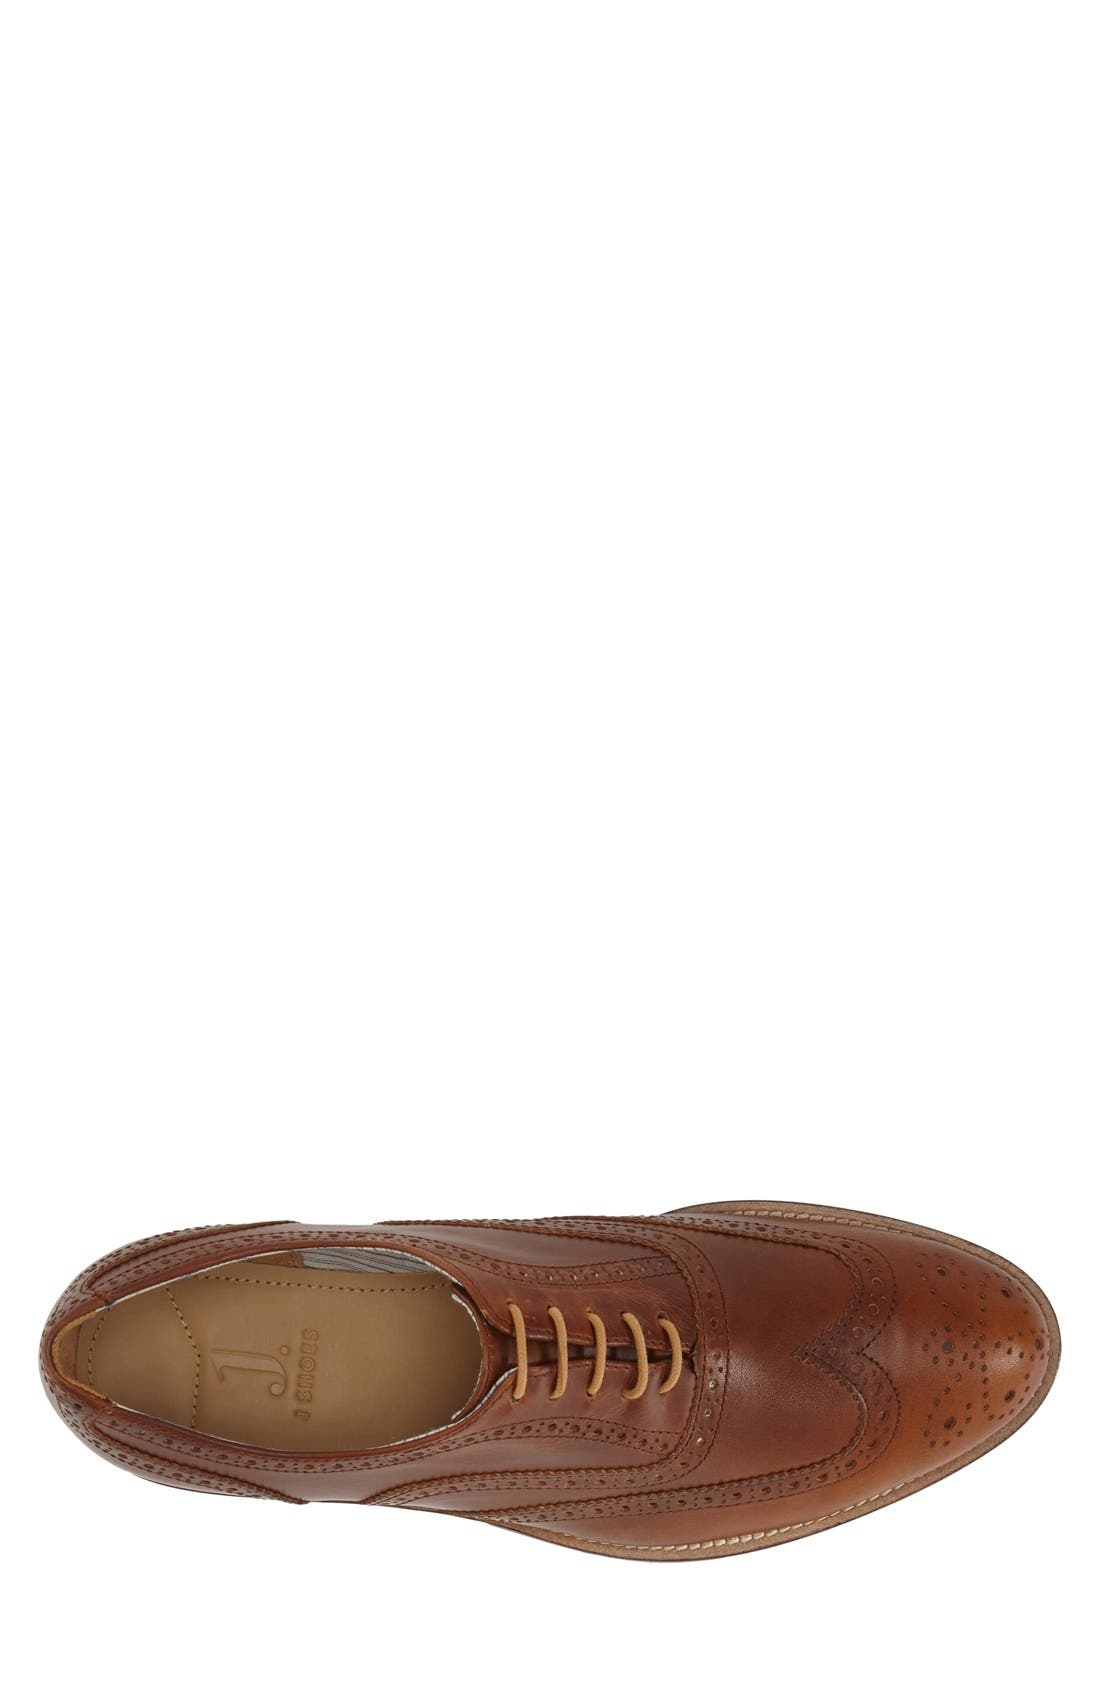 Charlie Plus Wingtip Oxford,                             Alternate thumbnail 3, color,                             BRASS LEATHER